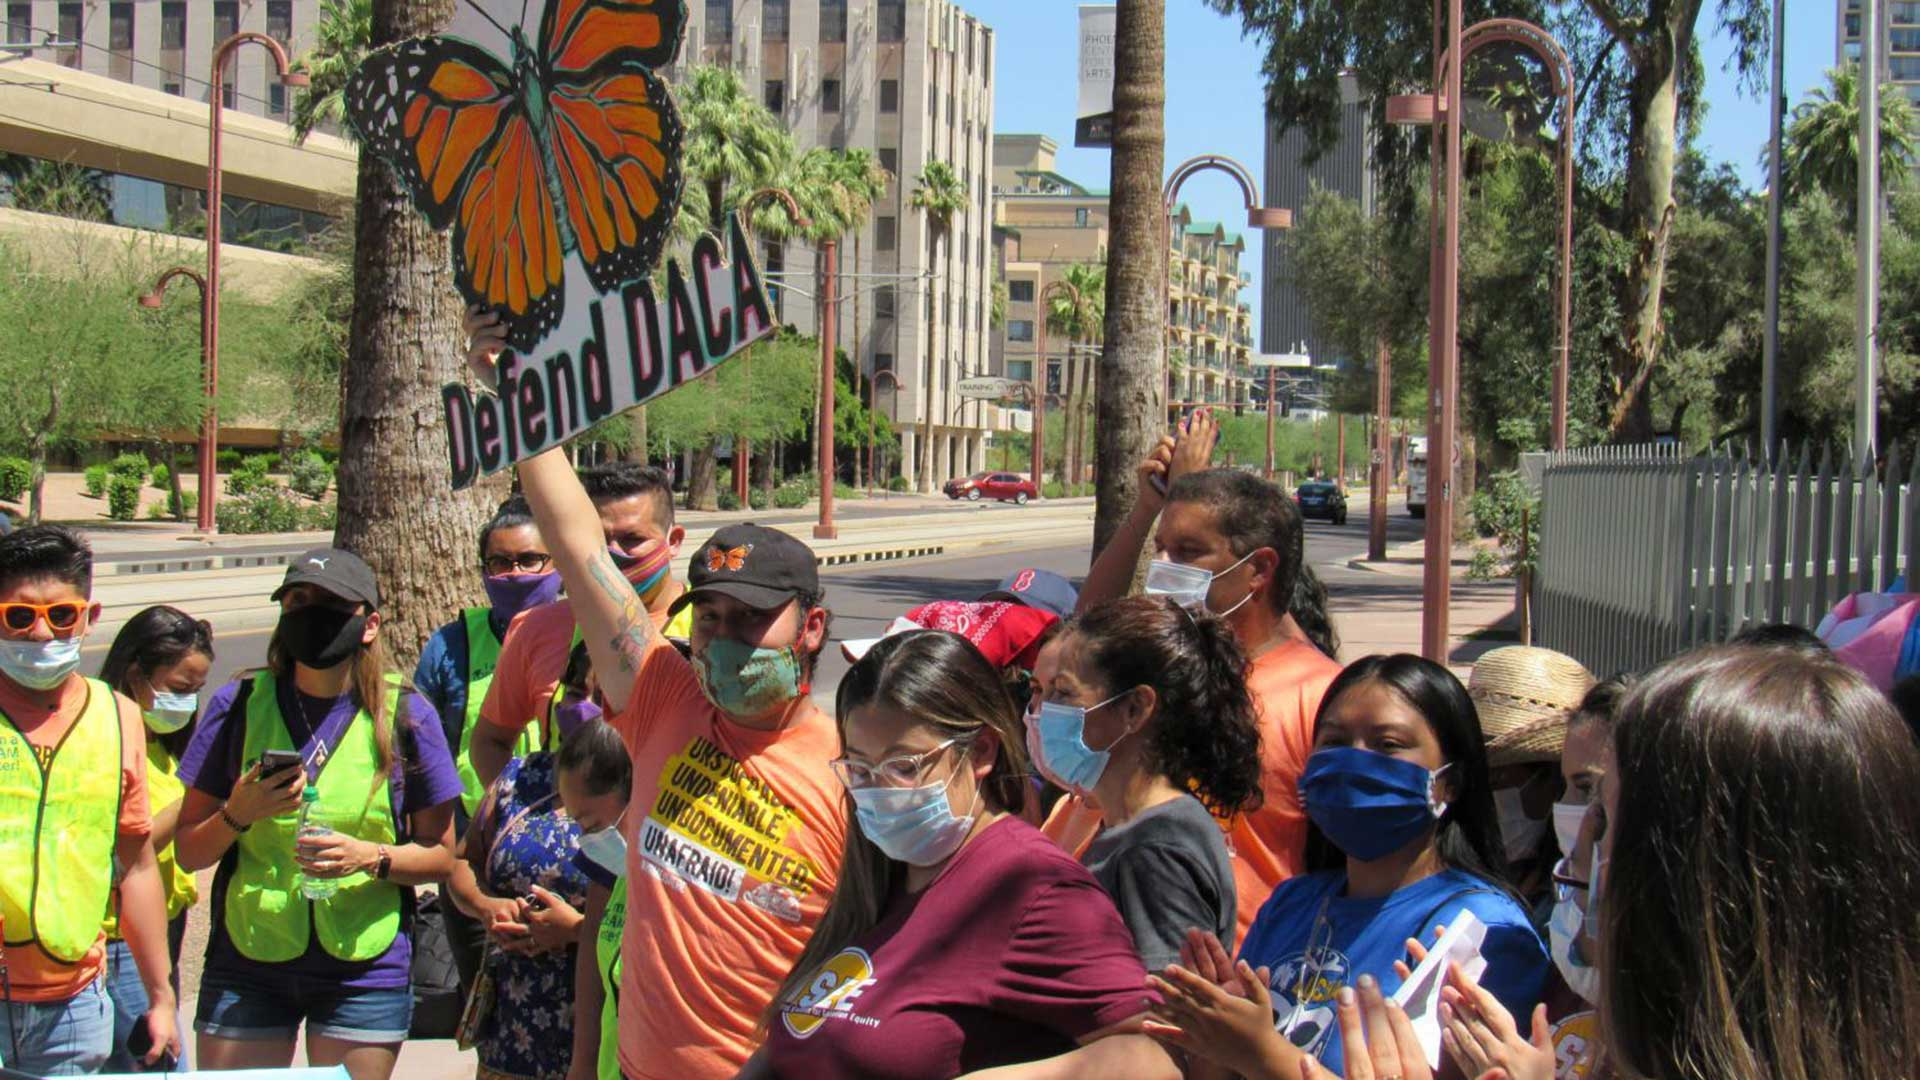 DACA supporters gathered outside ICE in Phoenix on June 18, 2020, to celebrate the Supreme Court's ruling to continue the DACA program for now.